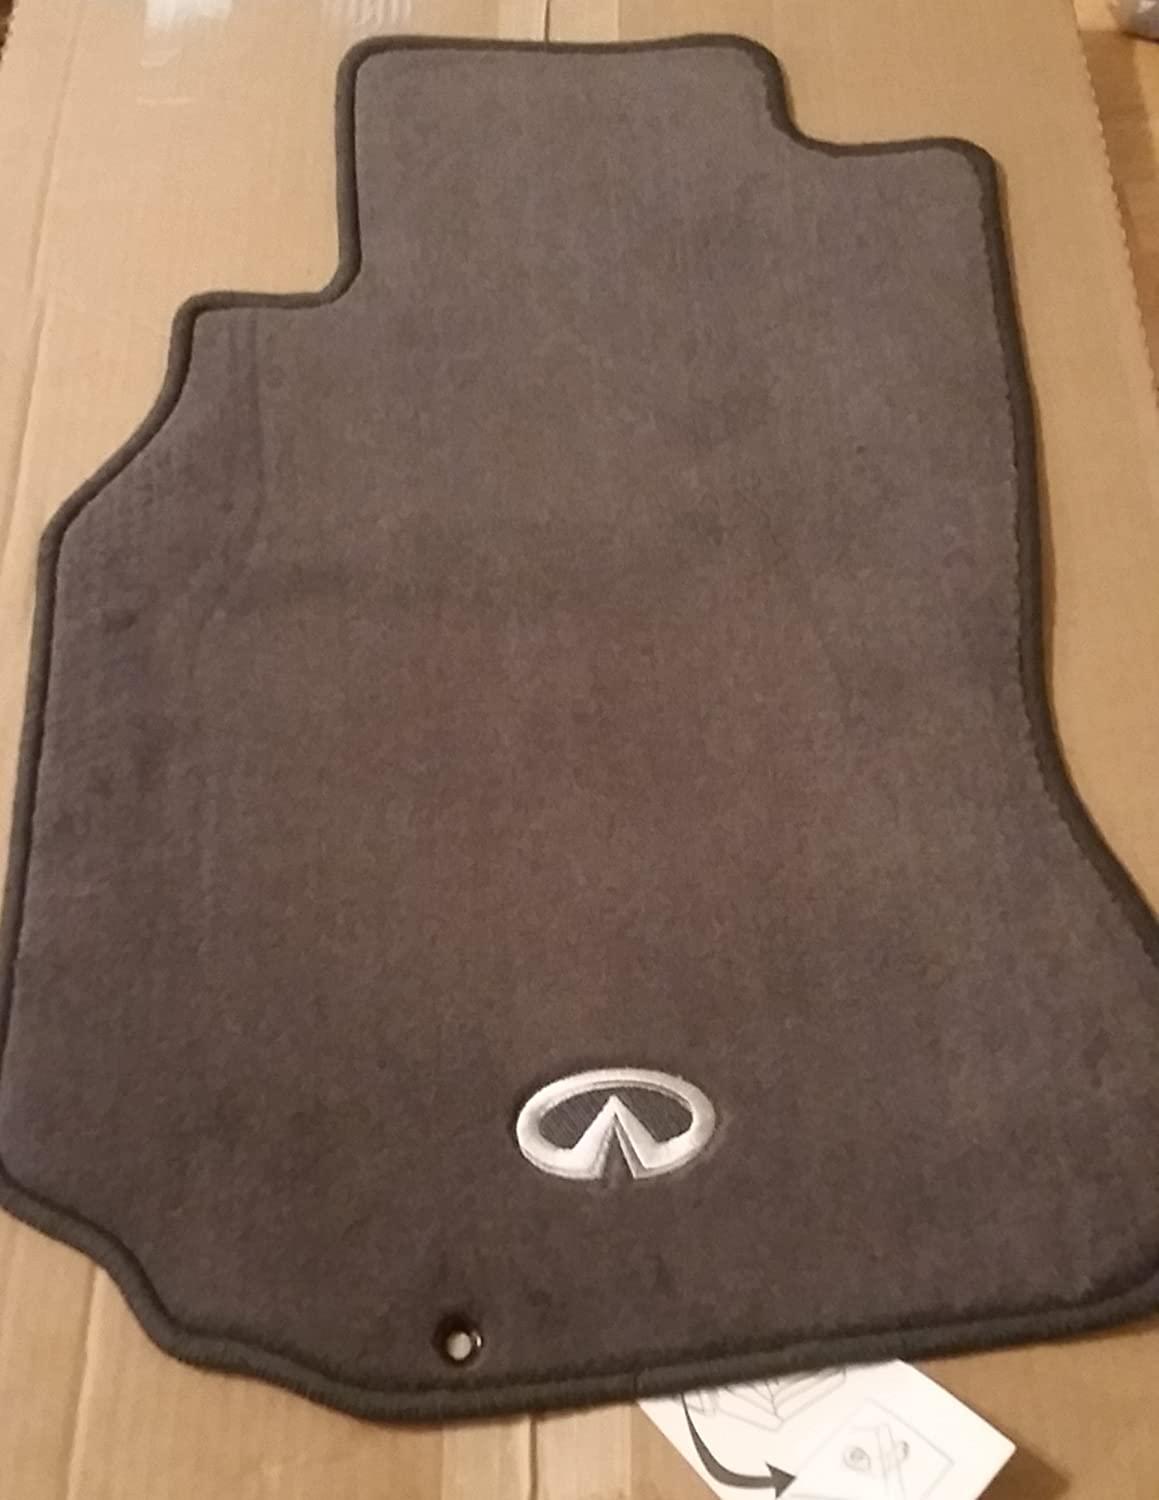 New OEM Infiniti JX35 2013 Carpeted Floor Mats **2 Colors Available**